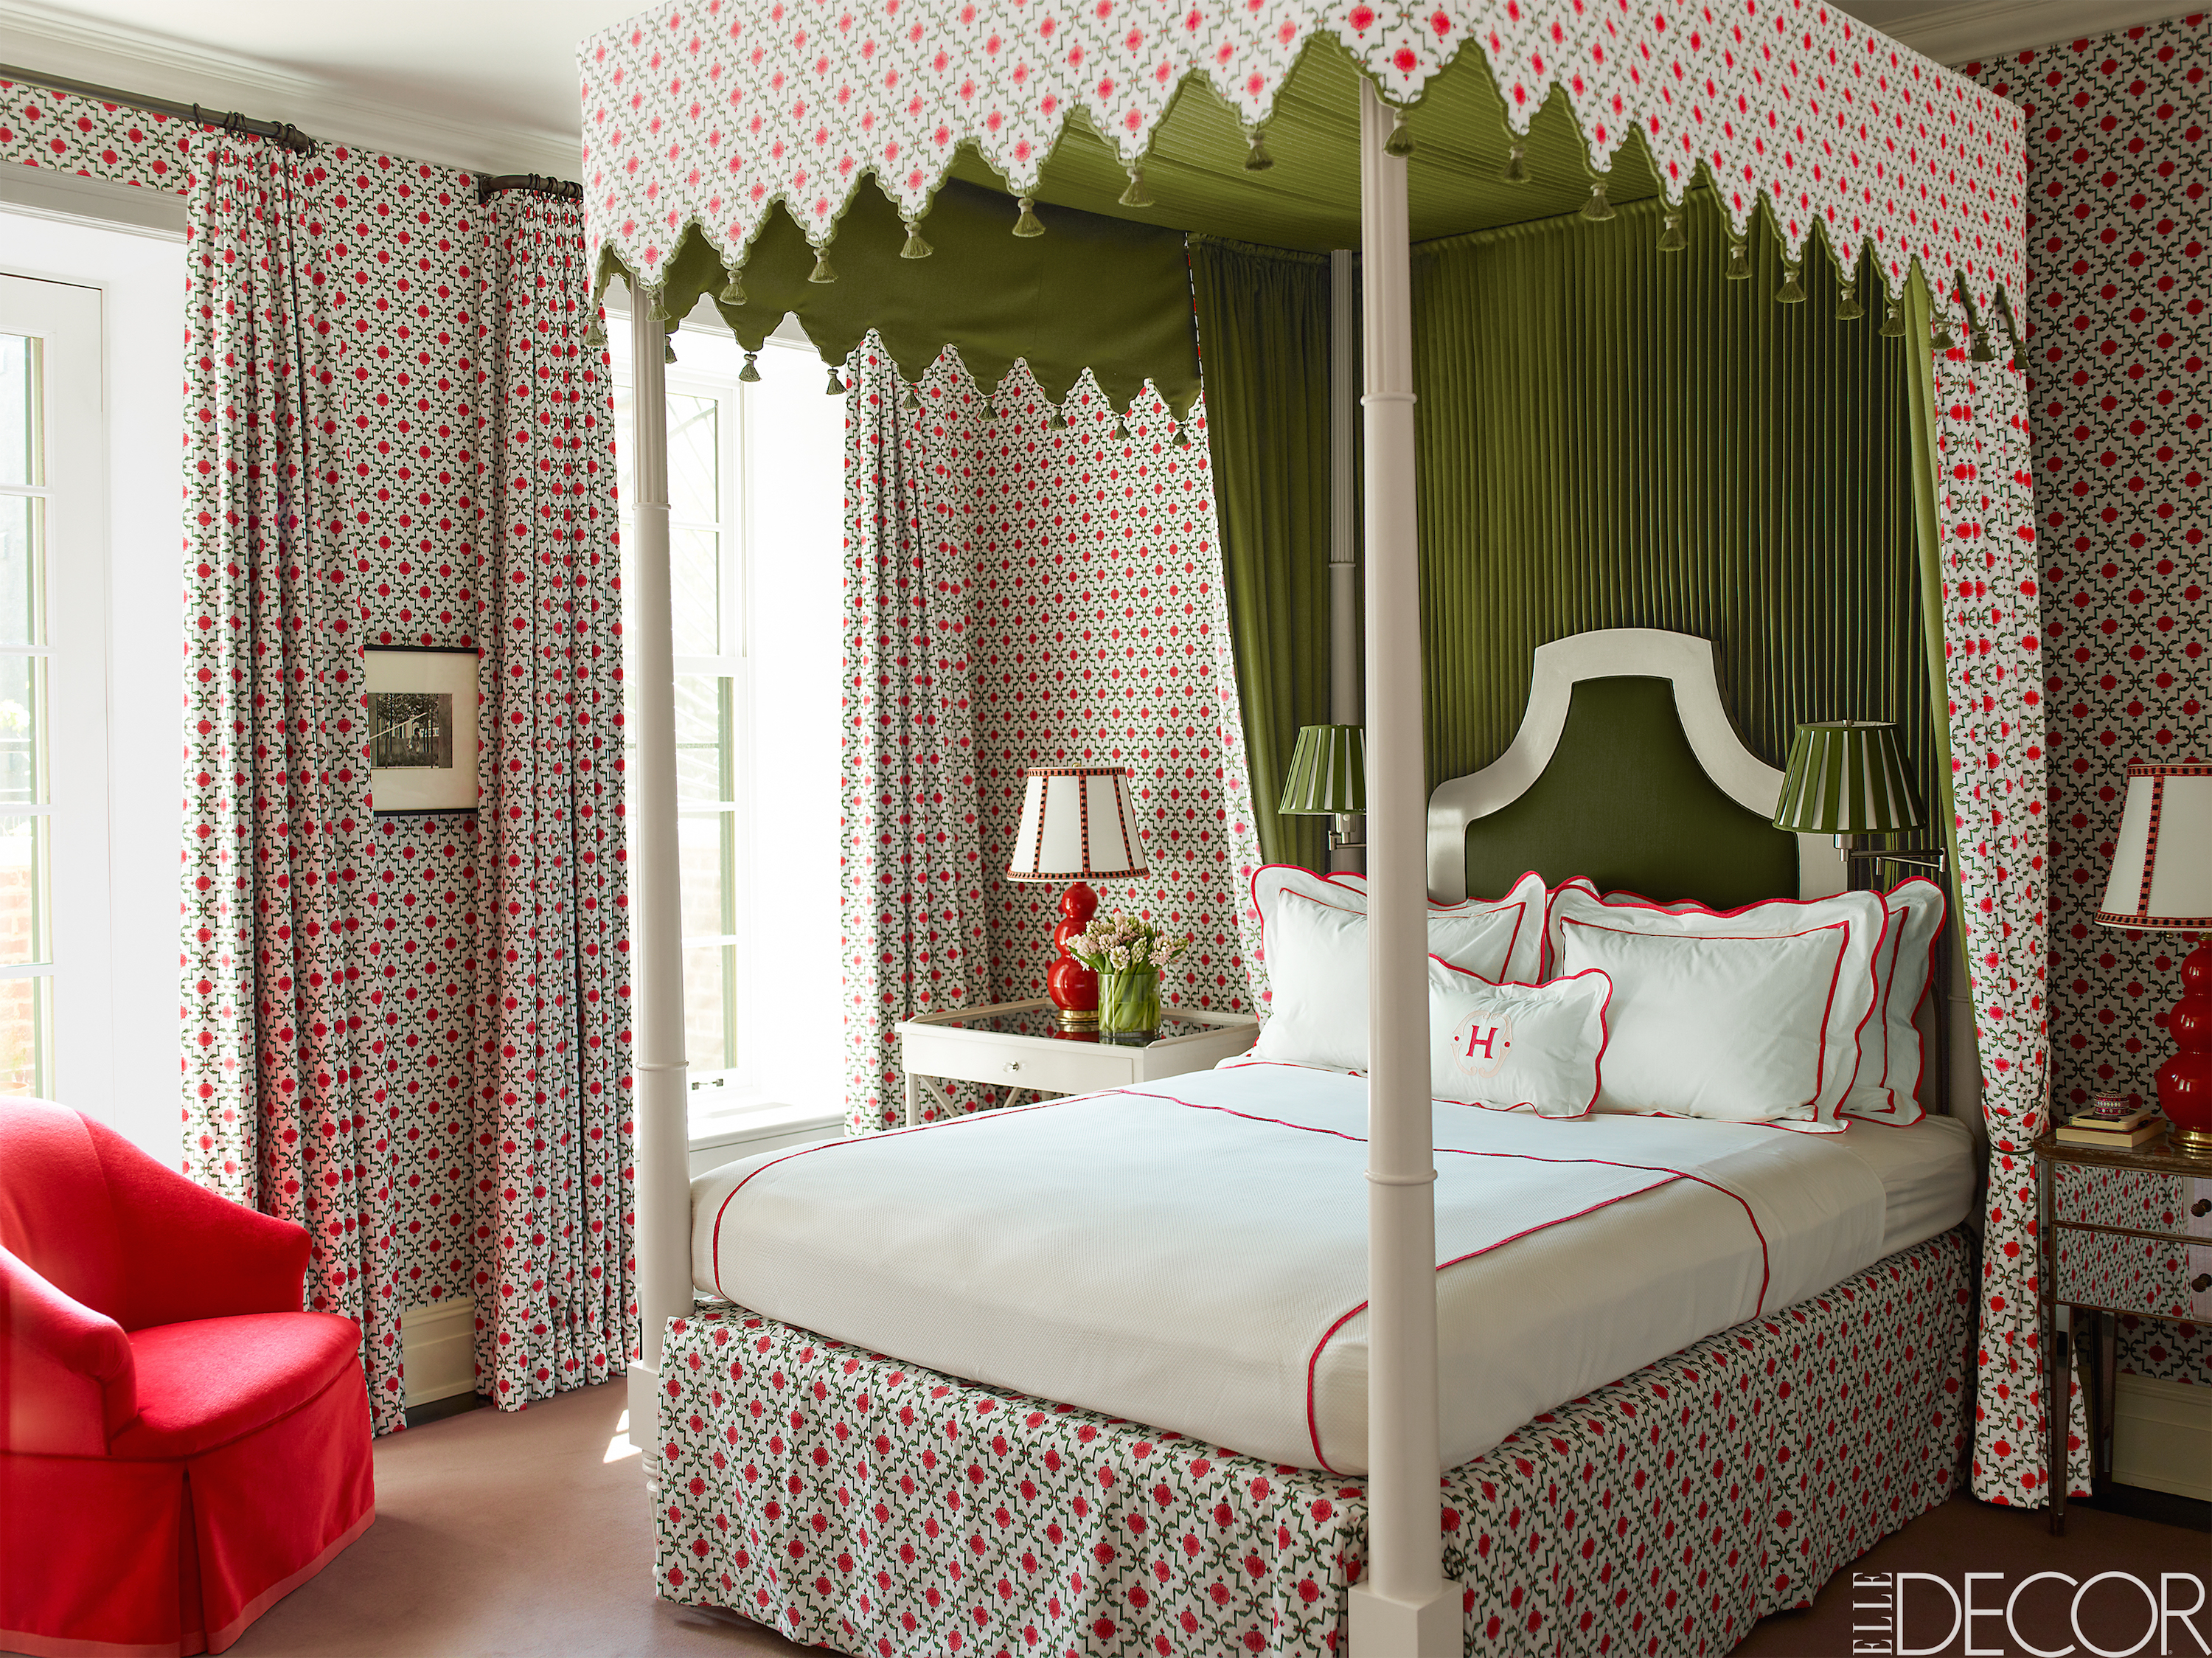 10 Girls Bedroom Decorating Ideas - Creative Girls Room ... on Girls Bedroom Ideas  id=82419